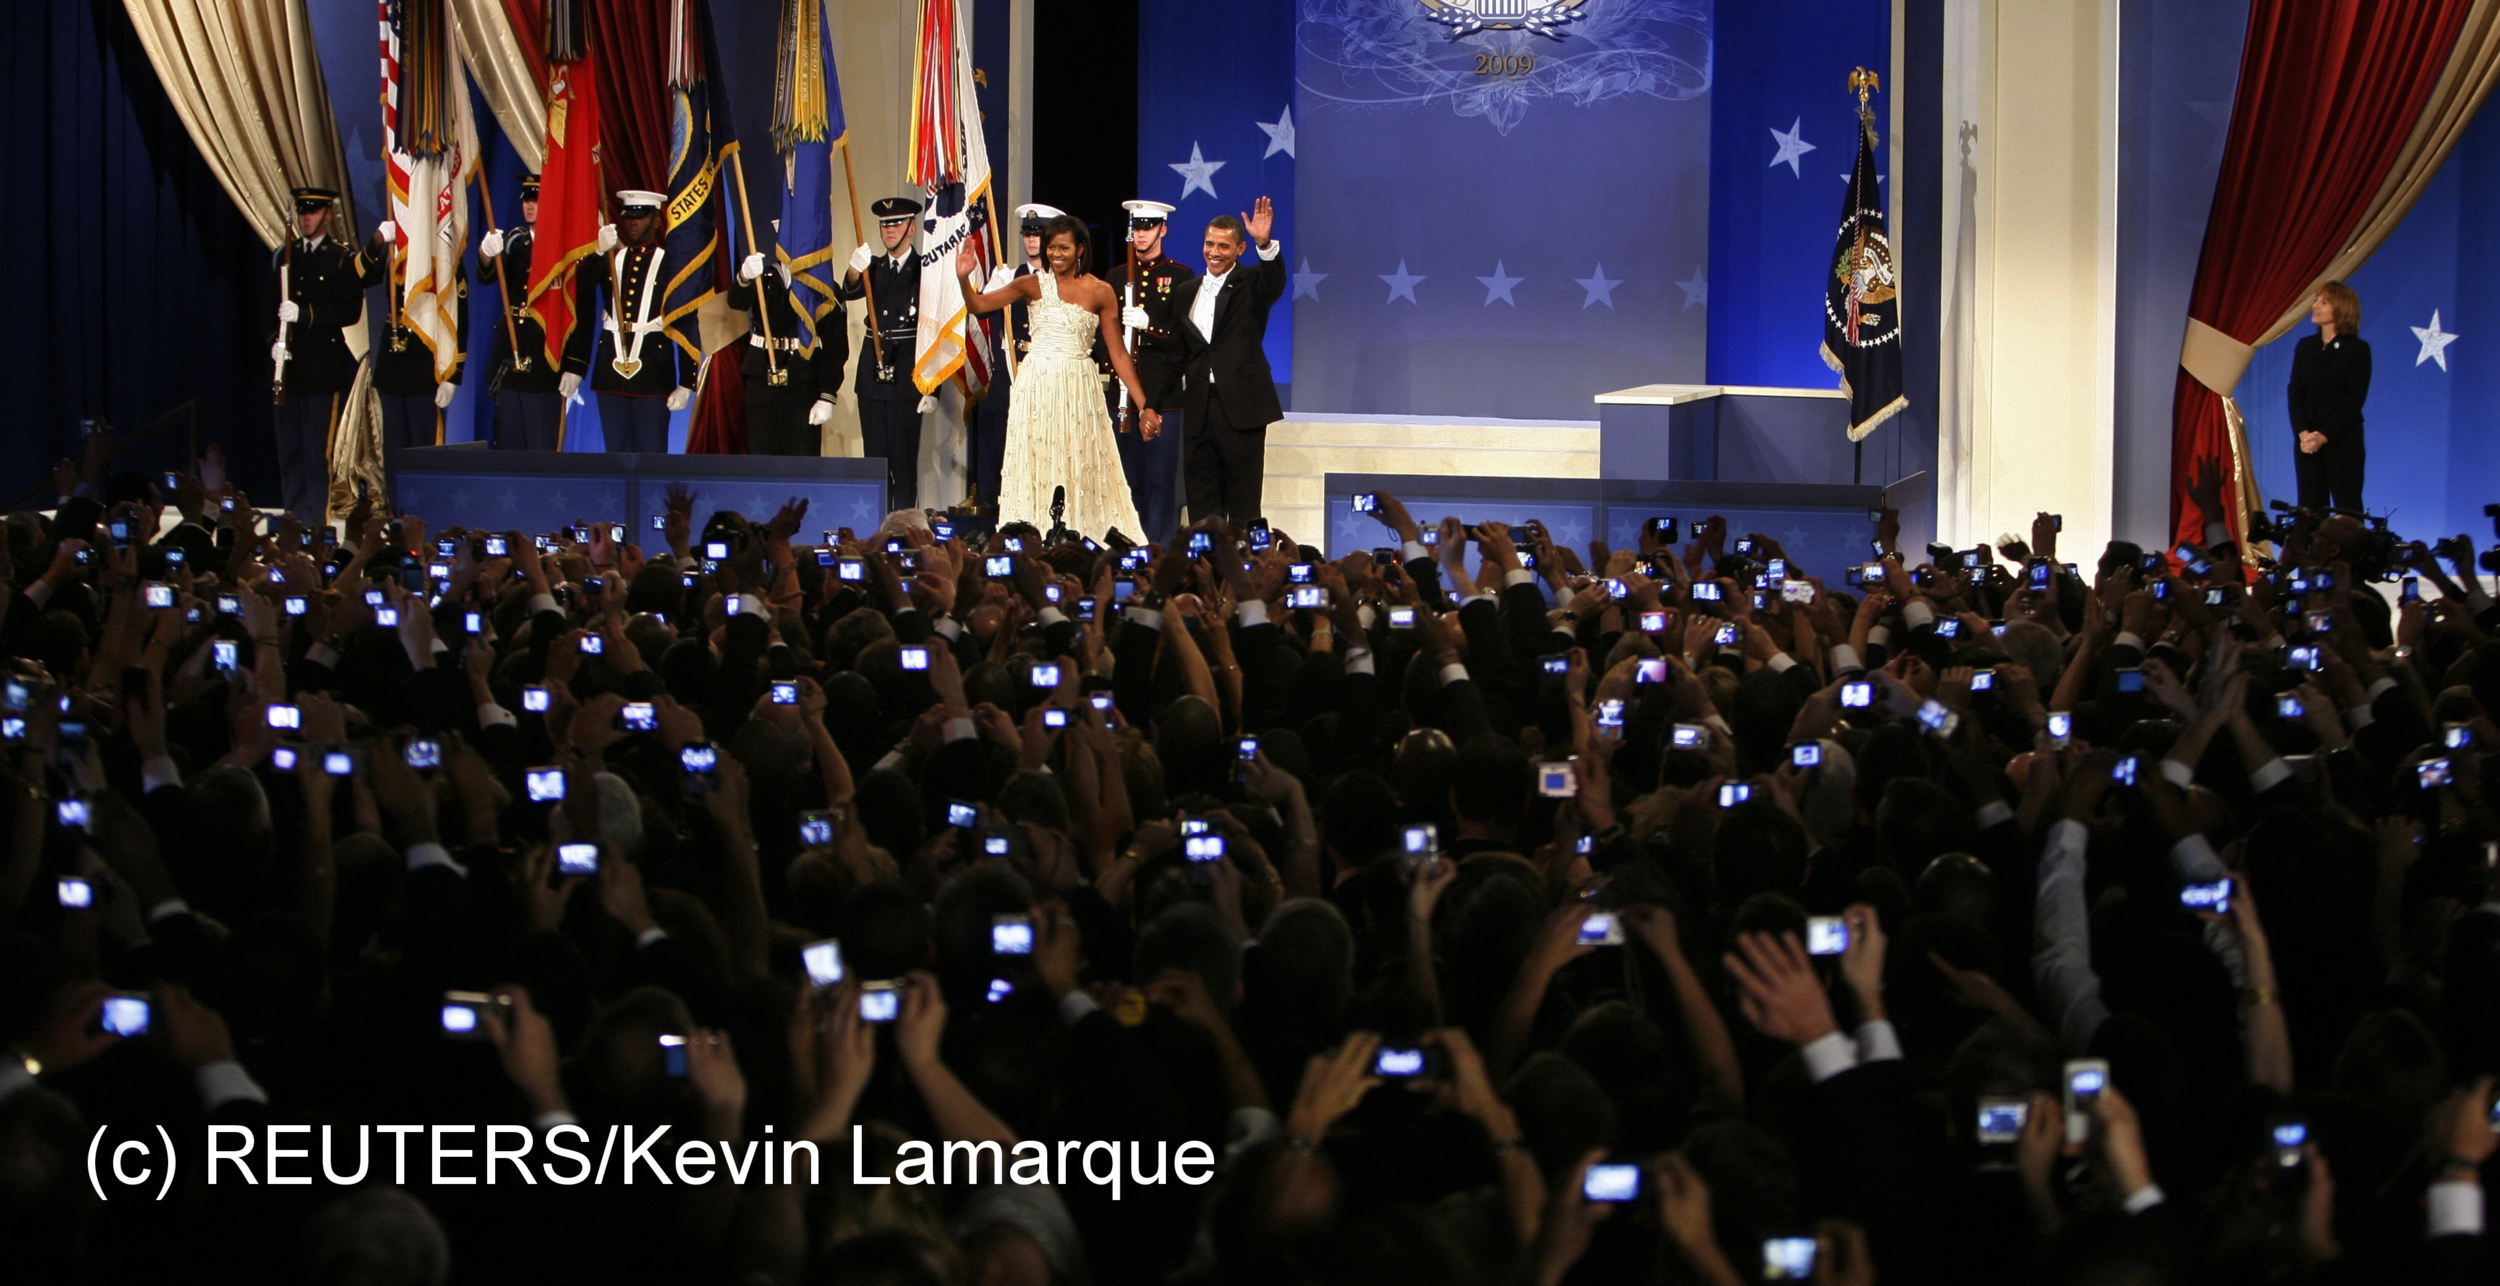 President Barack Obama and first lady Michelle wave to the crowd at the Home States Ball as audience members take pictures with their mobile phones in Washington January 20, 2009. Kevin Lamarque/REUTERS